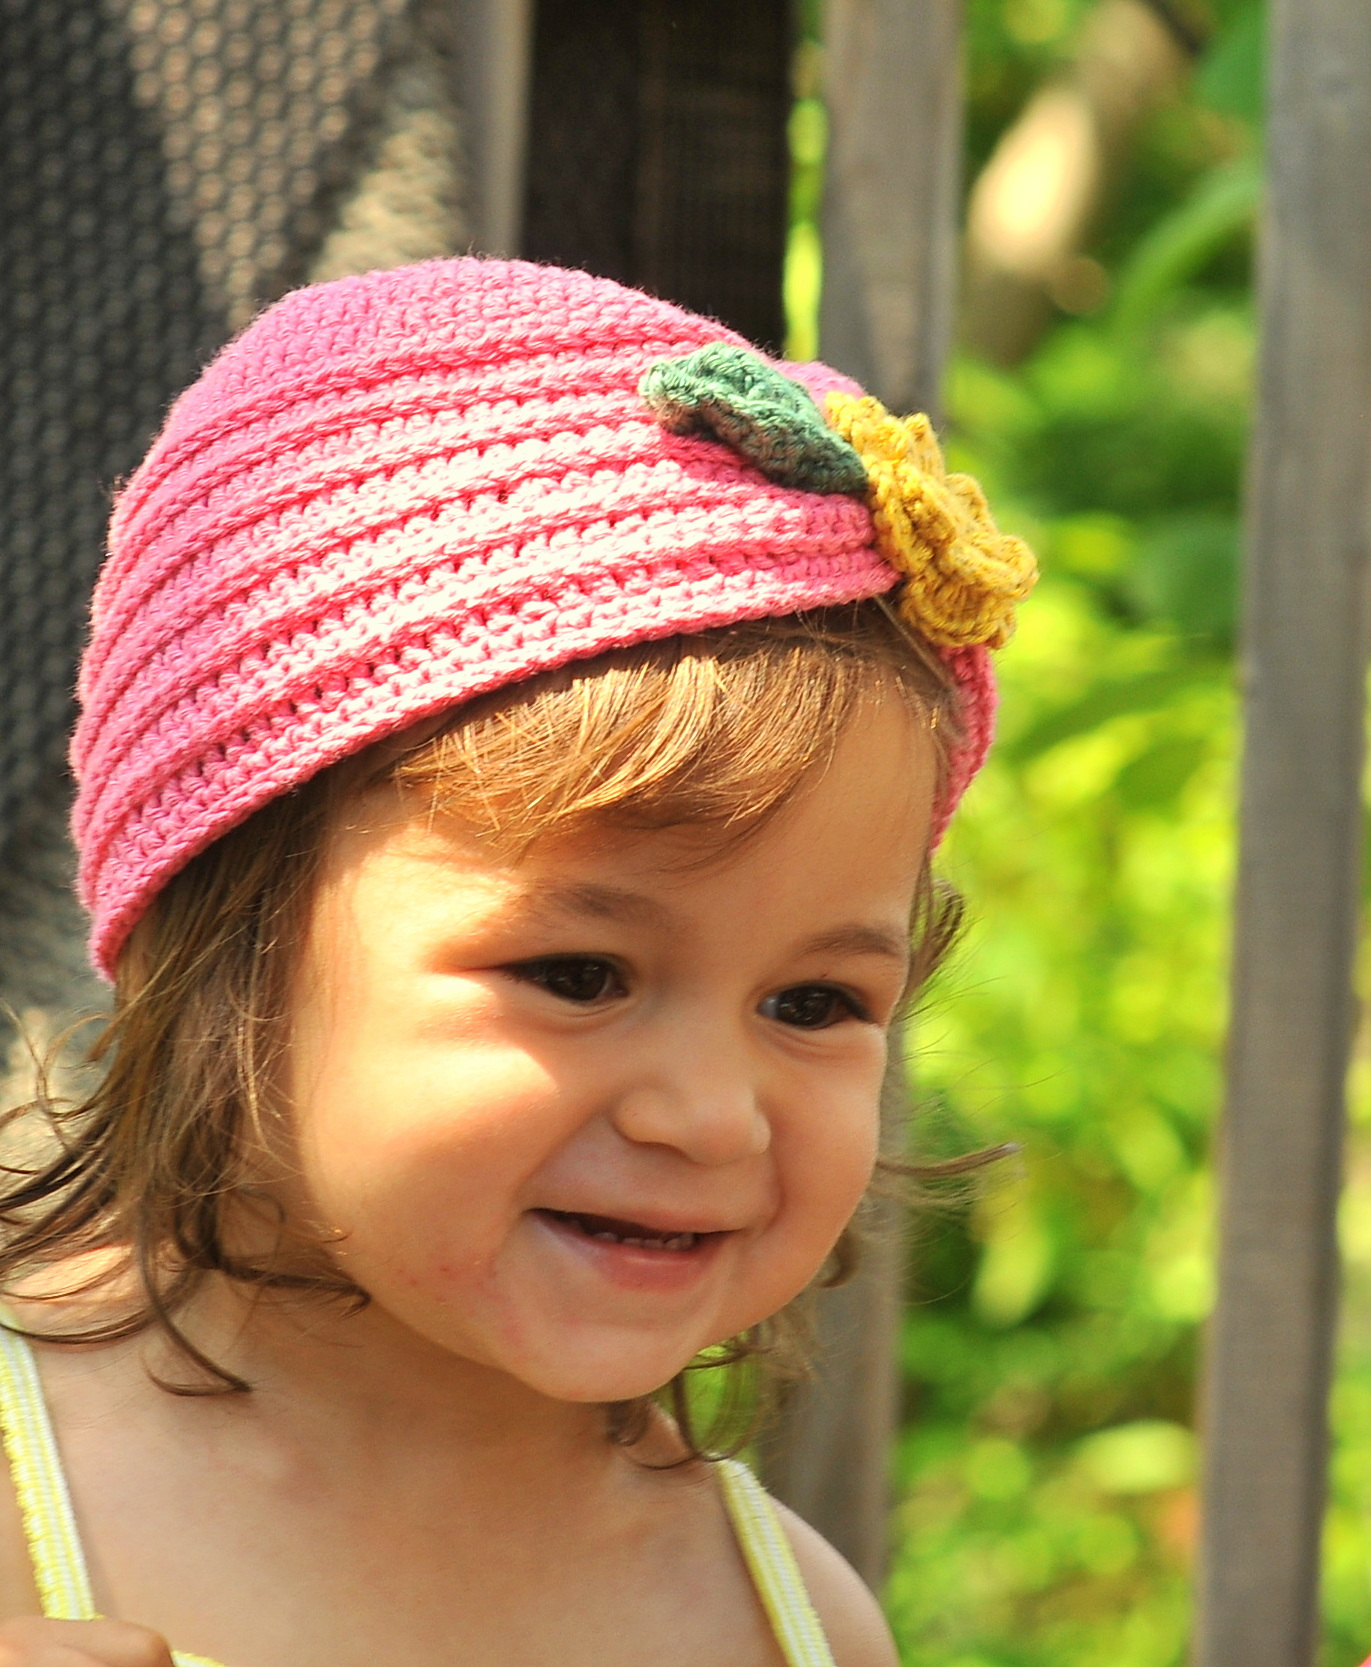 Free Crochet Hat Patterns For 1 Year Old : DIY: Crochet Toddler Turban with Flower and Free Pattern ...